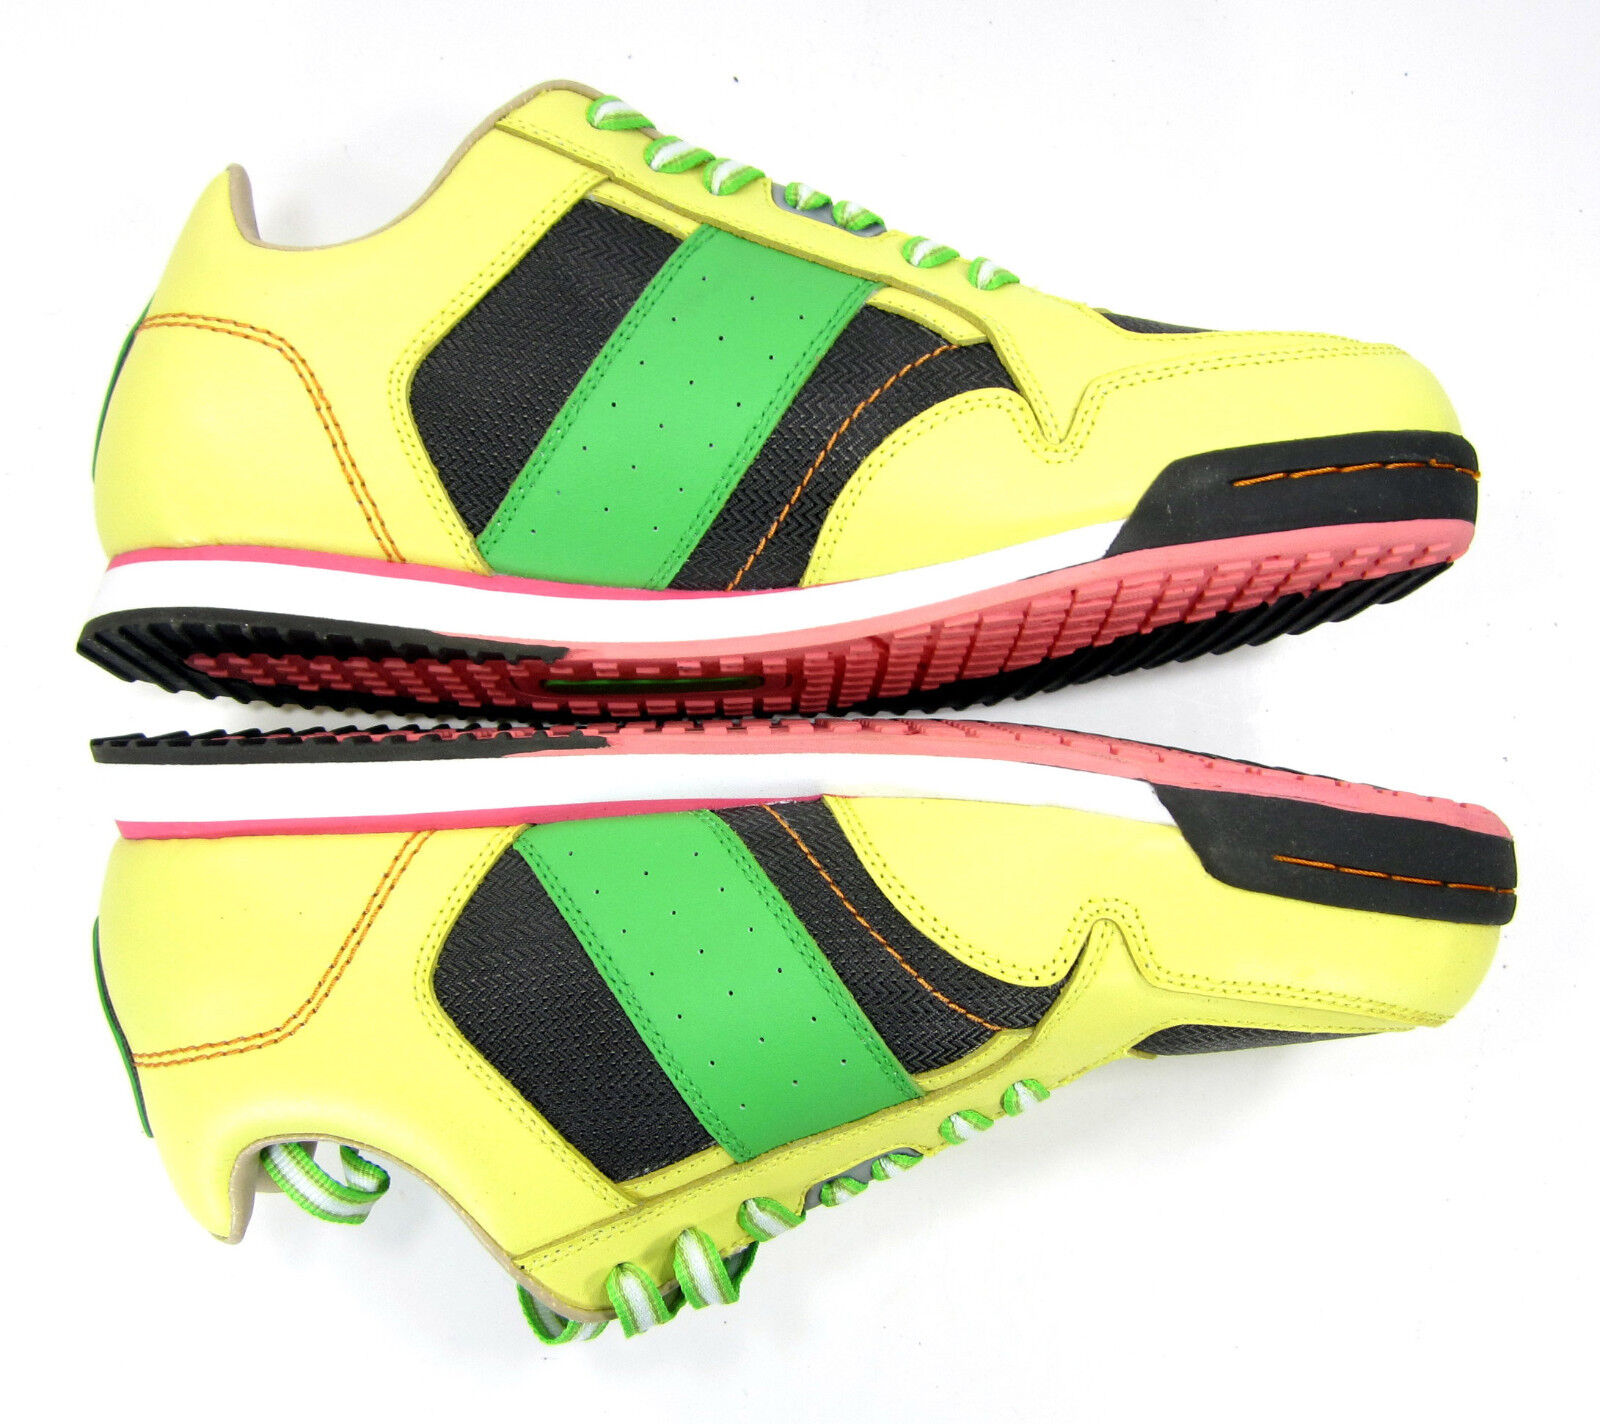 Ceaser Lunix Shoes Runner CLX Runner Shoes SP Yellow/Green  Size 13 abbe82